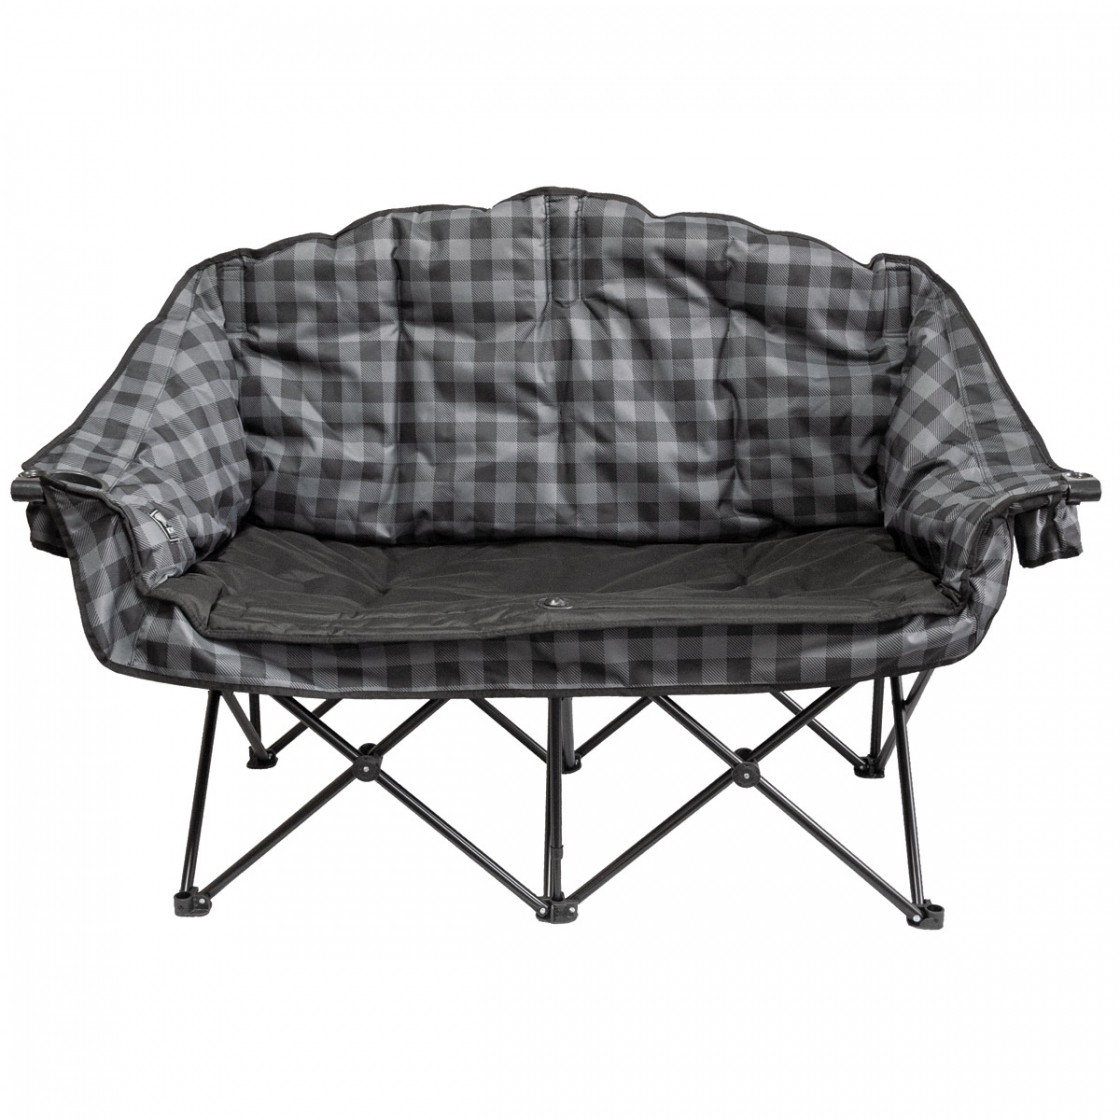 Bear Buddy Double Chair Grey Plaid